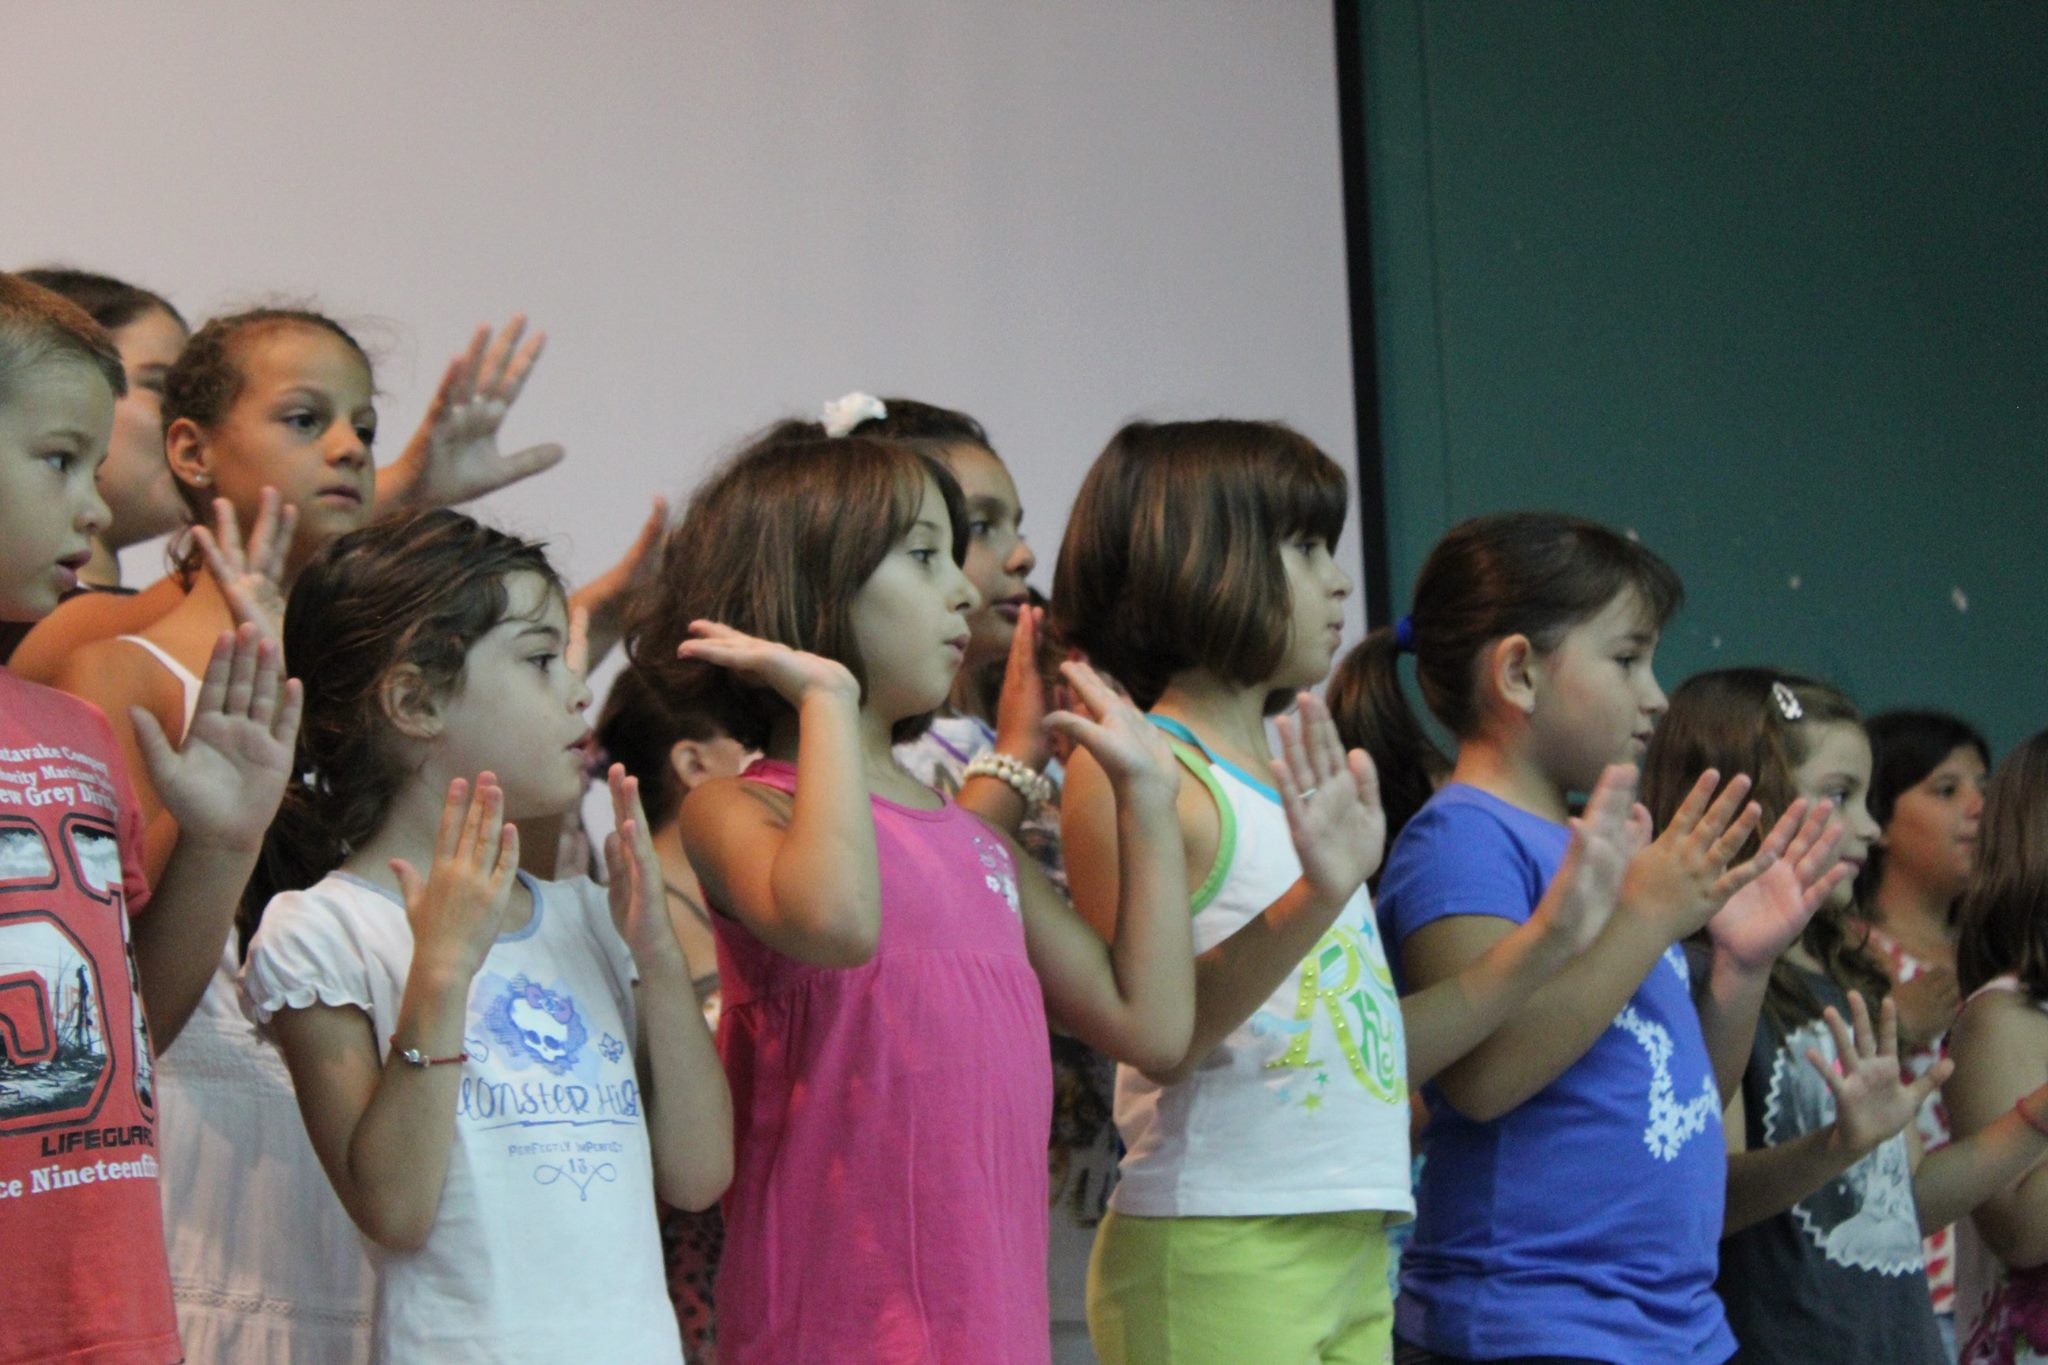 Children from Karlovasi, Samos, participating in a group percussion exercise with Aristea Mellos and Ensemble Ritsos in 2015